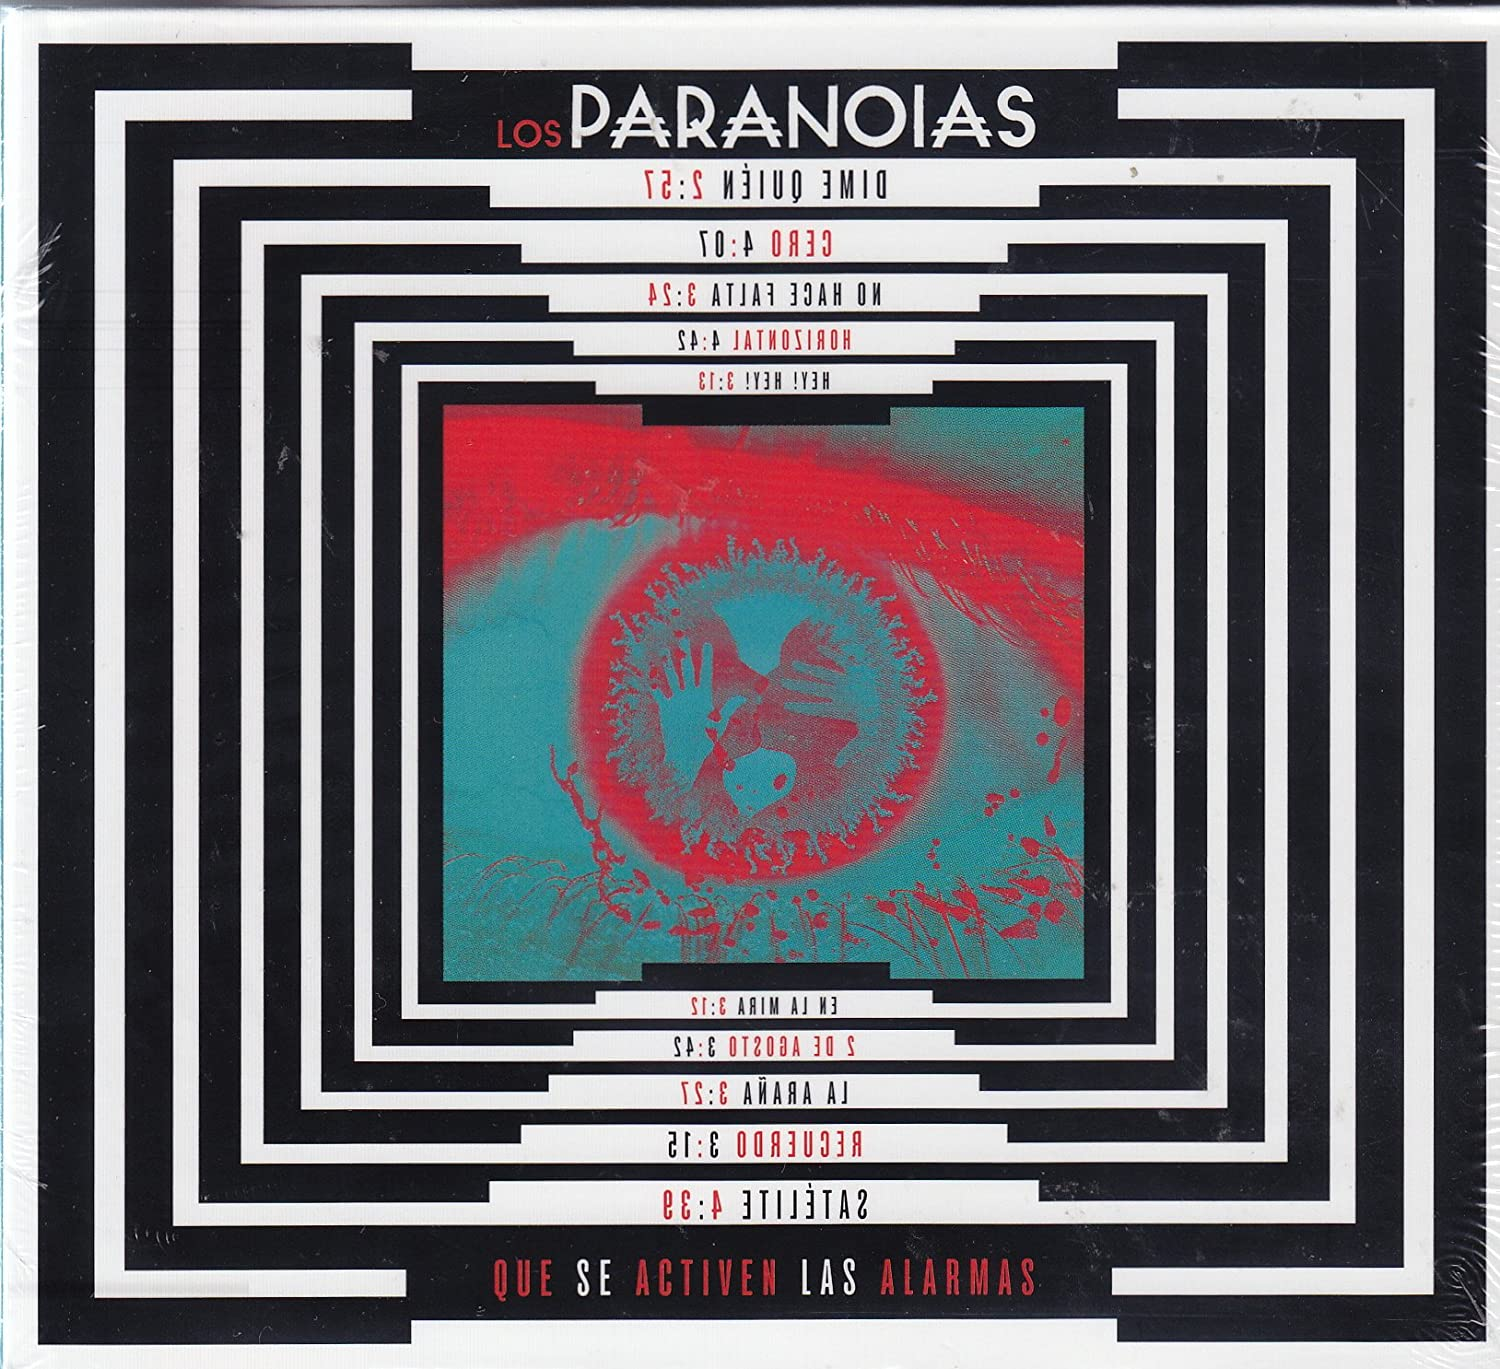 Los Paranoias - Que Se Activen las Alarmas - Amazon.com Music